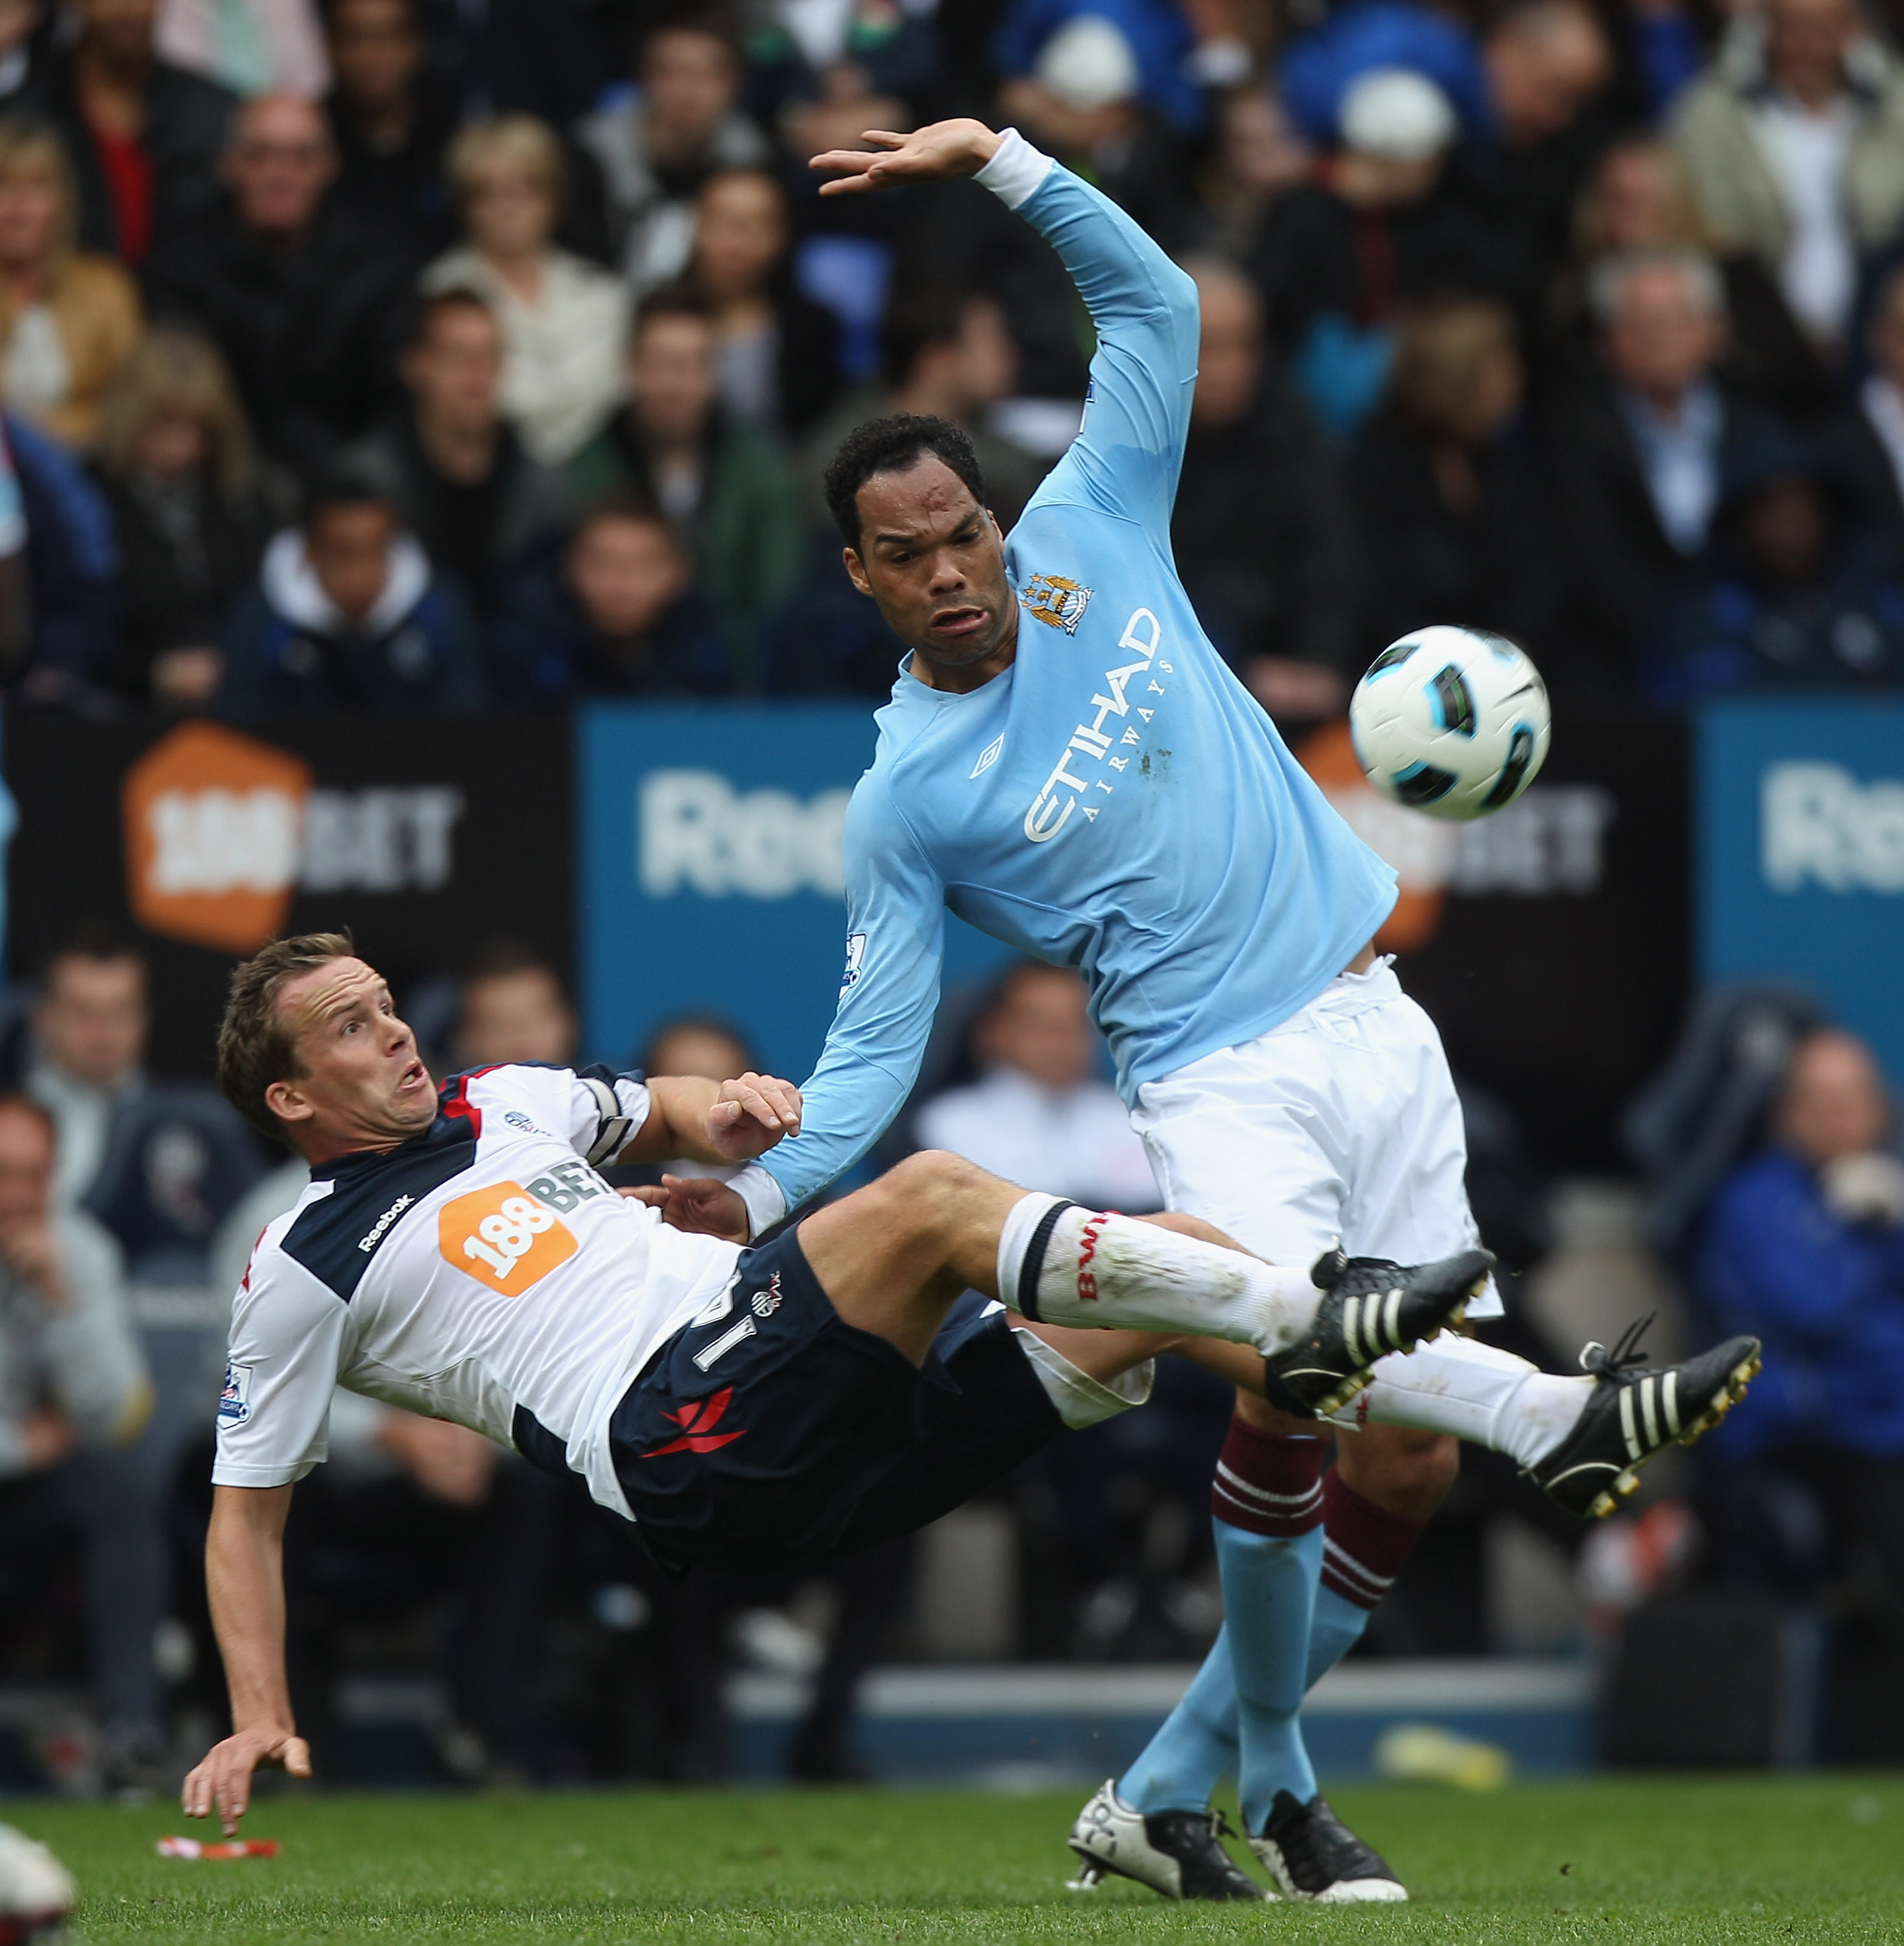 BOLTON, ENGLAND - MAY 22:  Kevin Davies (L) of Bolton falls under the challenge of Joleon Lescott (R) during the Barclays Premier League match between  Bolton Wanderers and Manchester City at the Reebok Stadium on May 22, 2011 in Bolton, England.  (Photo